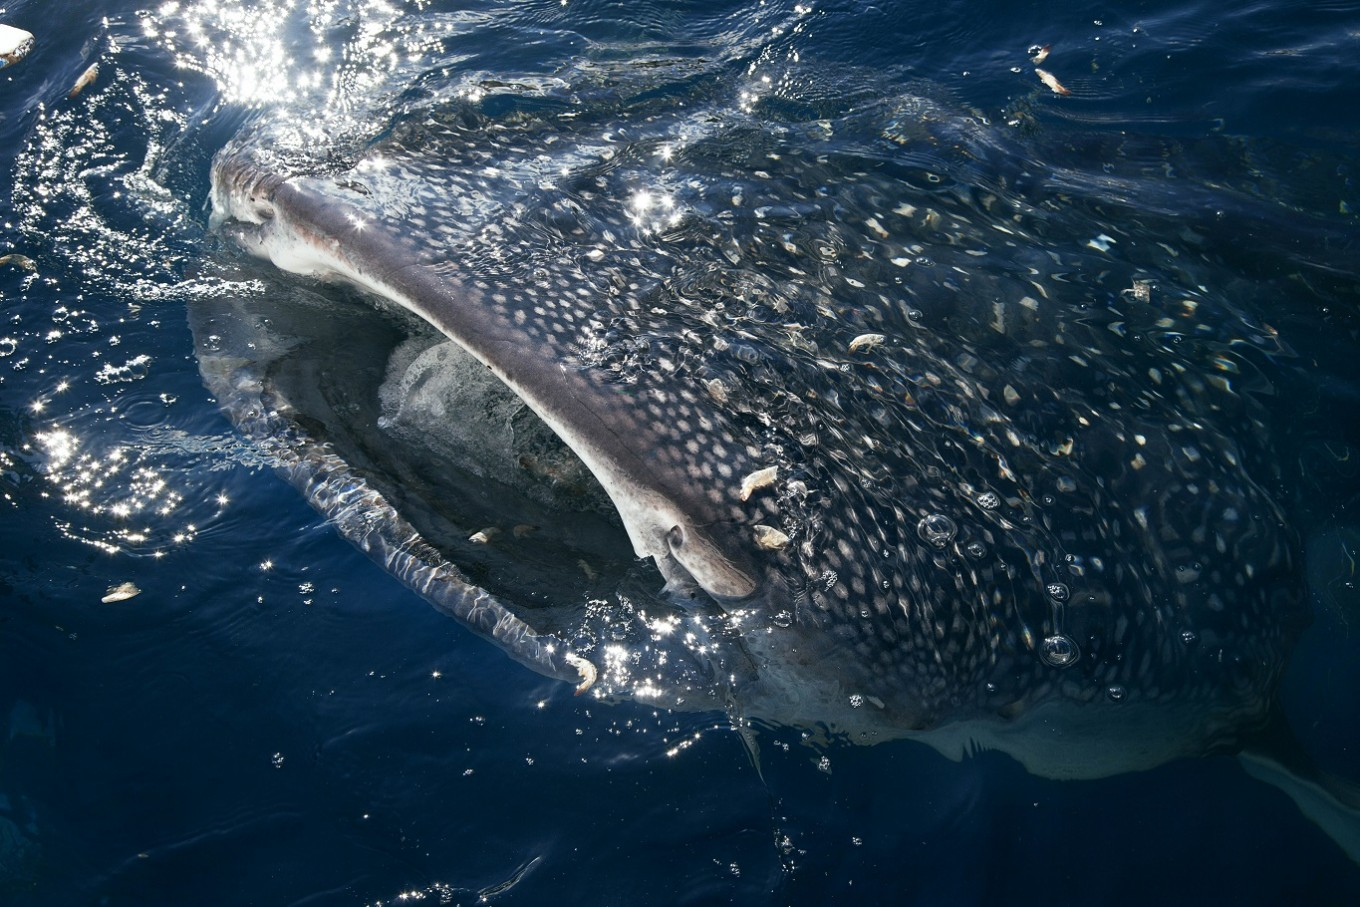 Whale sharks have been commonly spotted in this area for two years.